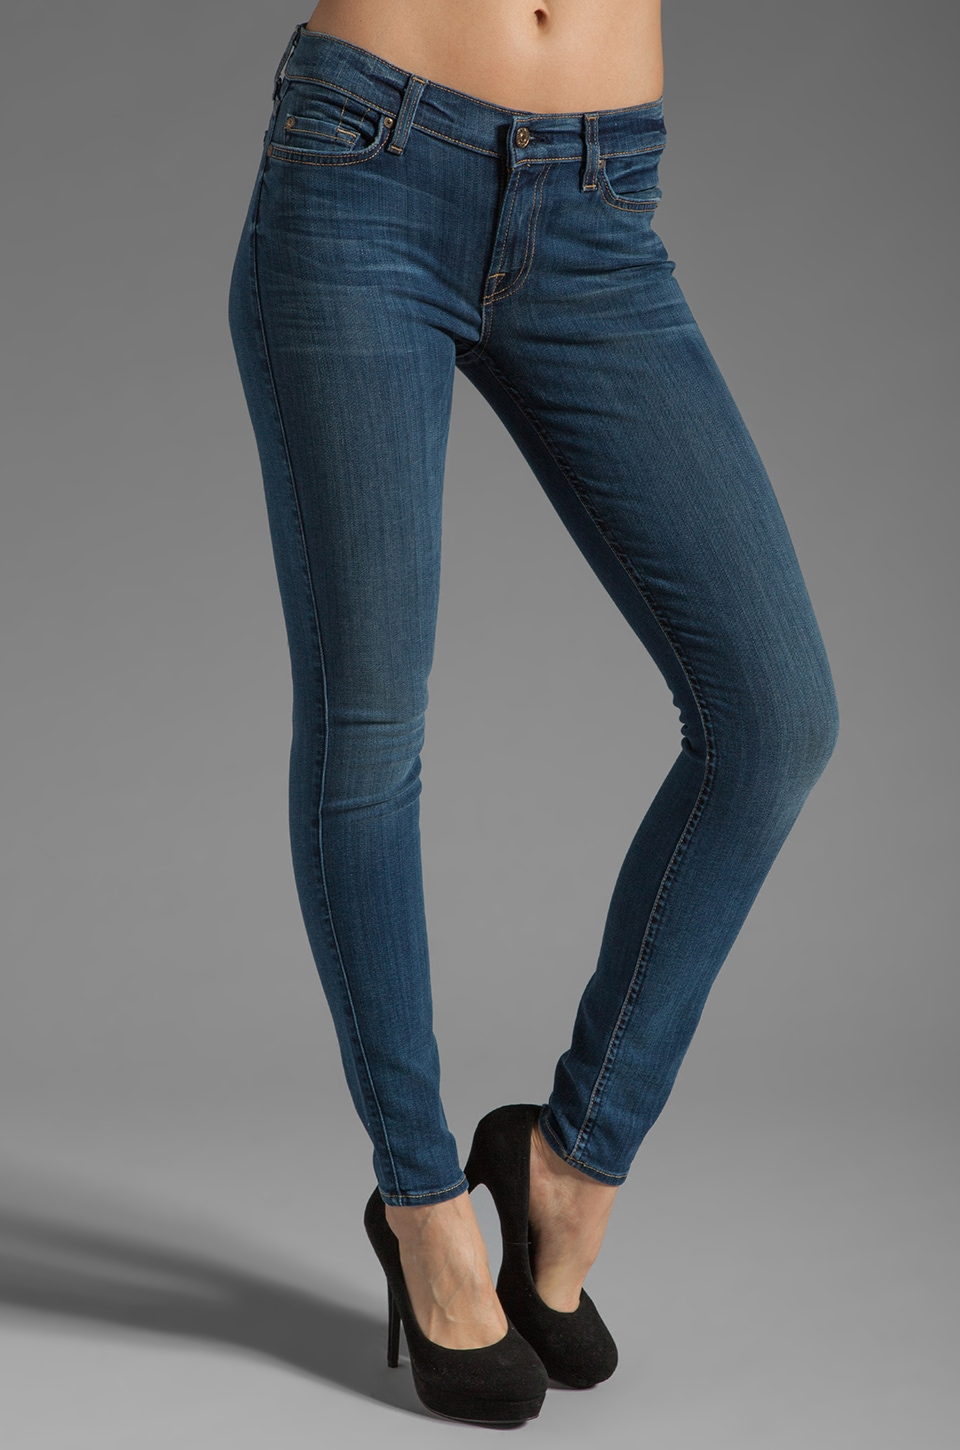 7 For All Mankind The Skinny with Squiggle in Slim Illusion Medium